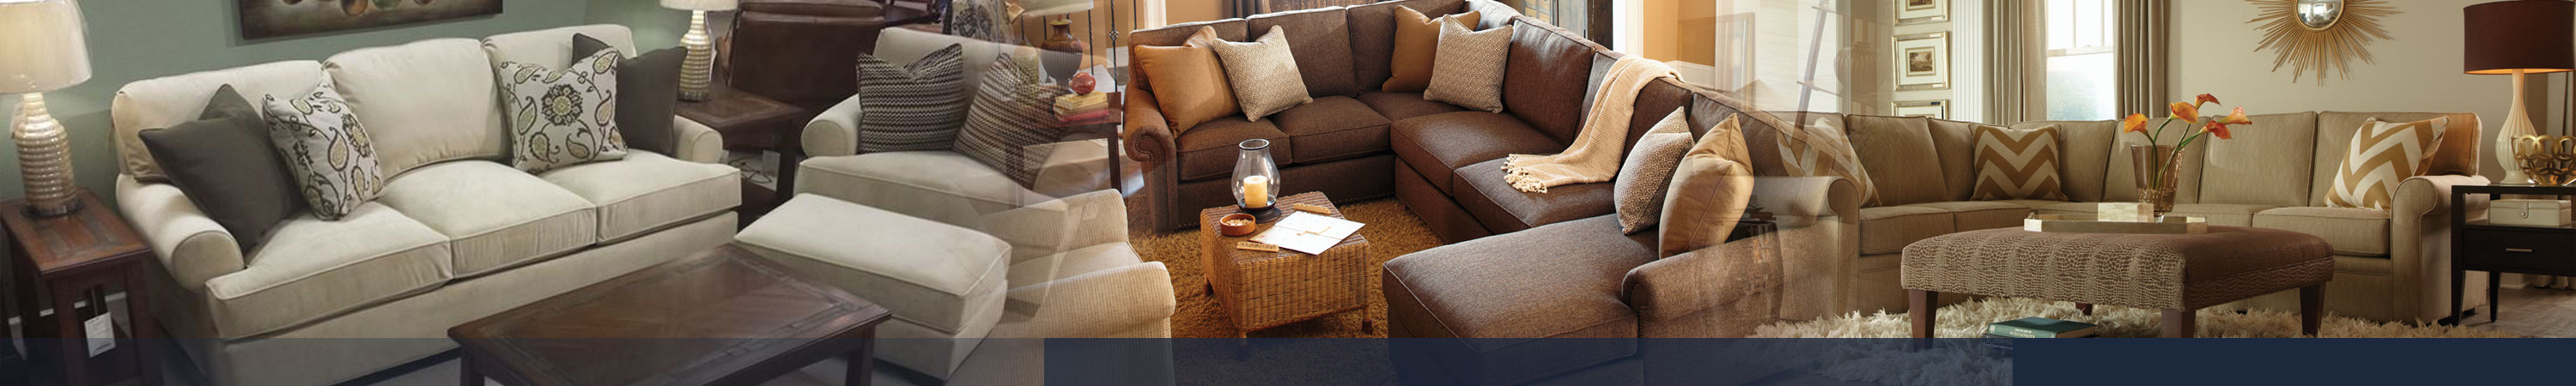 Living Room Furniture Cary NC | Sofas, Recliners, Sectionals